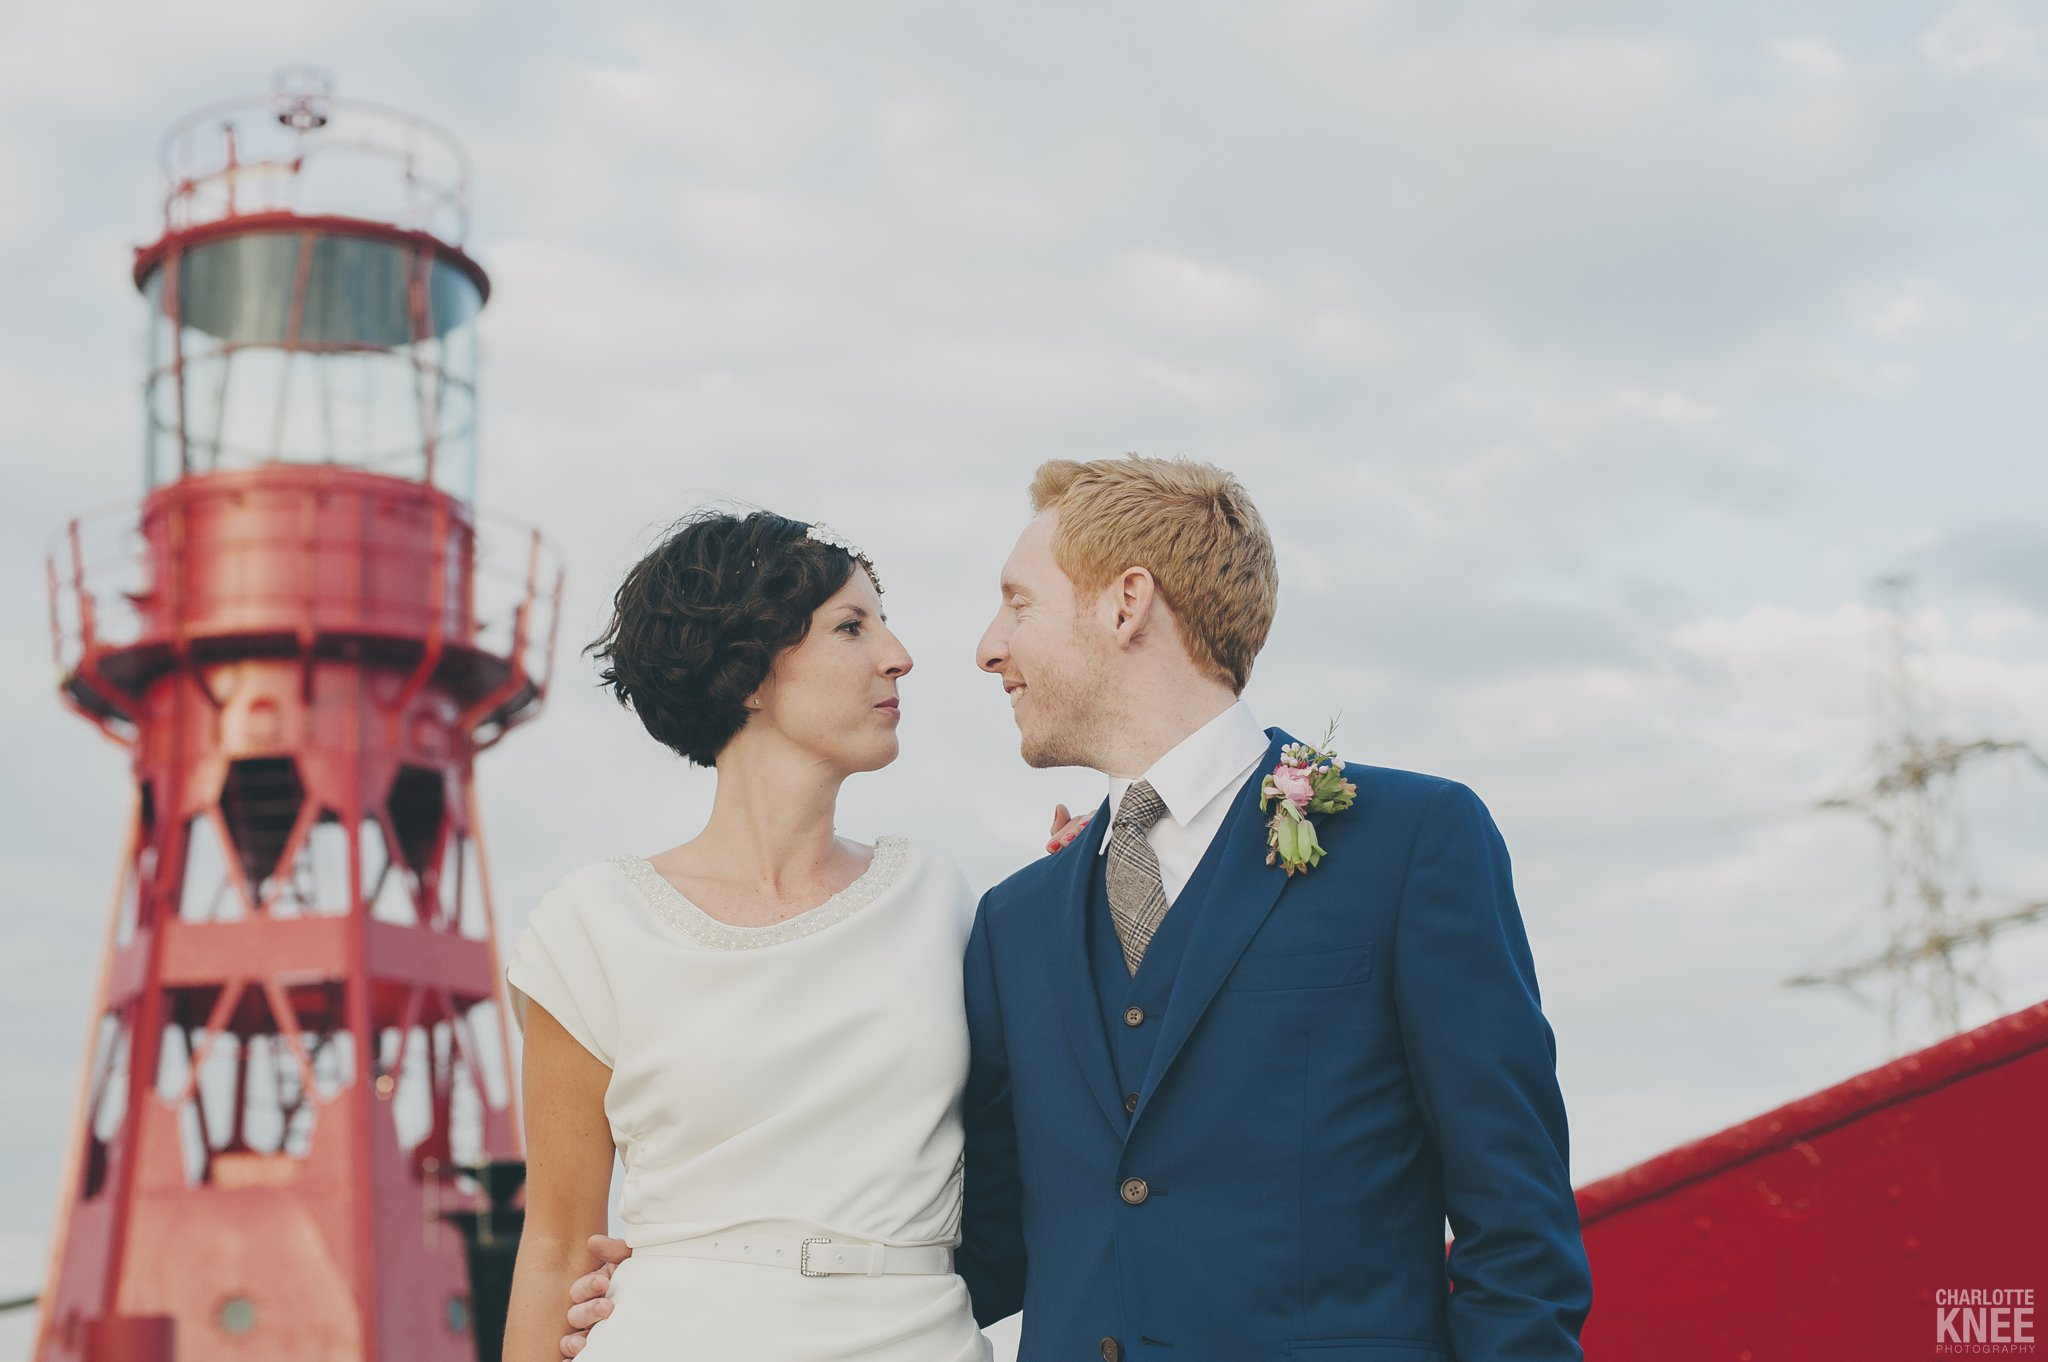 London-Wedding-Trinity-Buoy-Wharf-Charlotte-Knee-Photography_0067.jpg